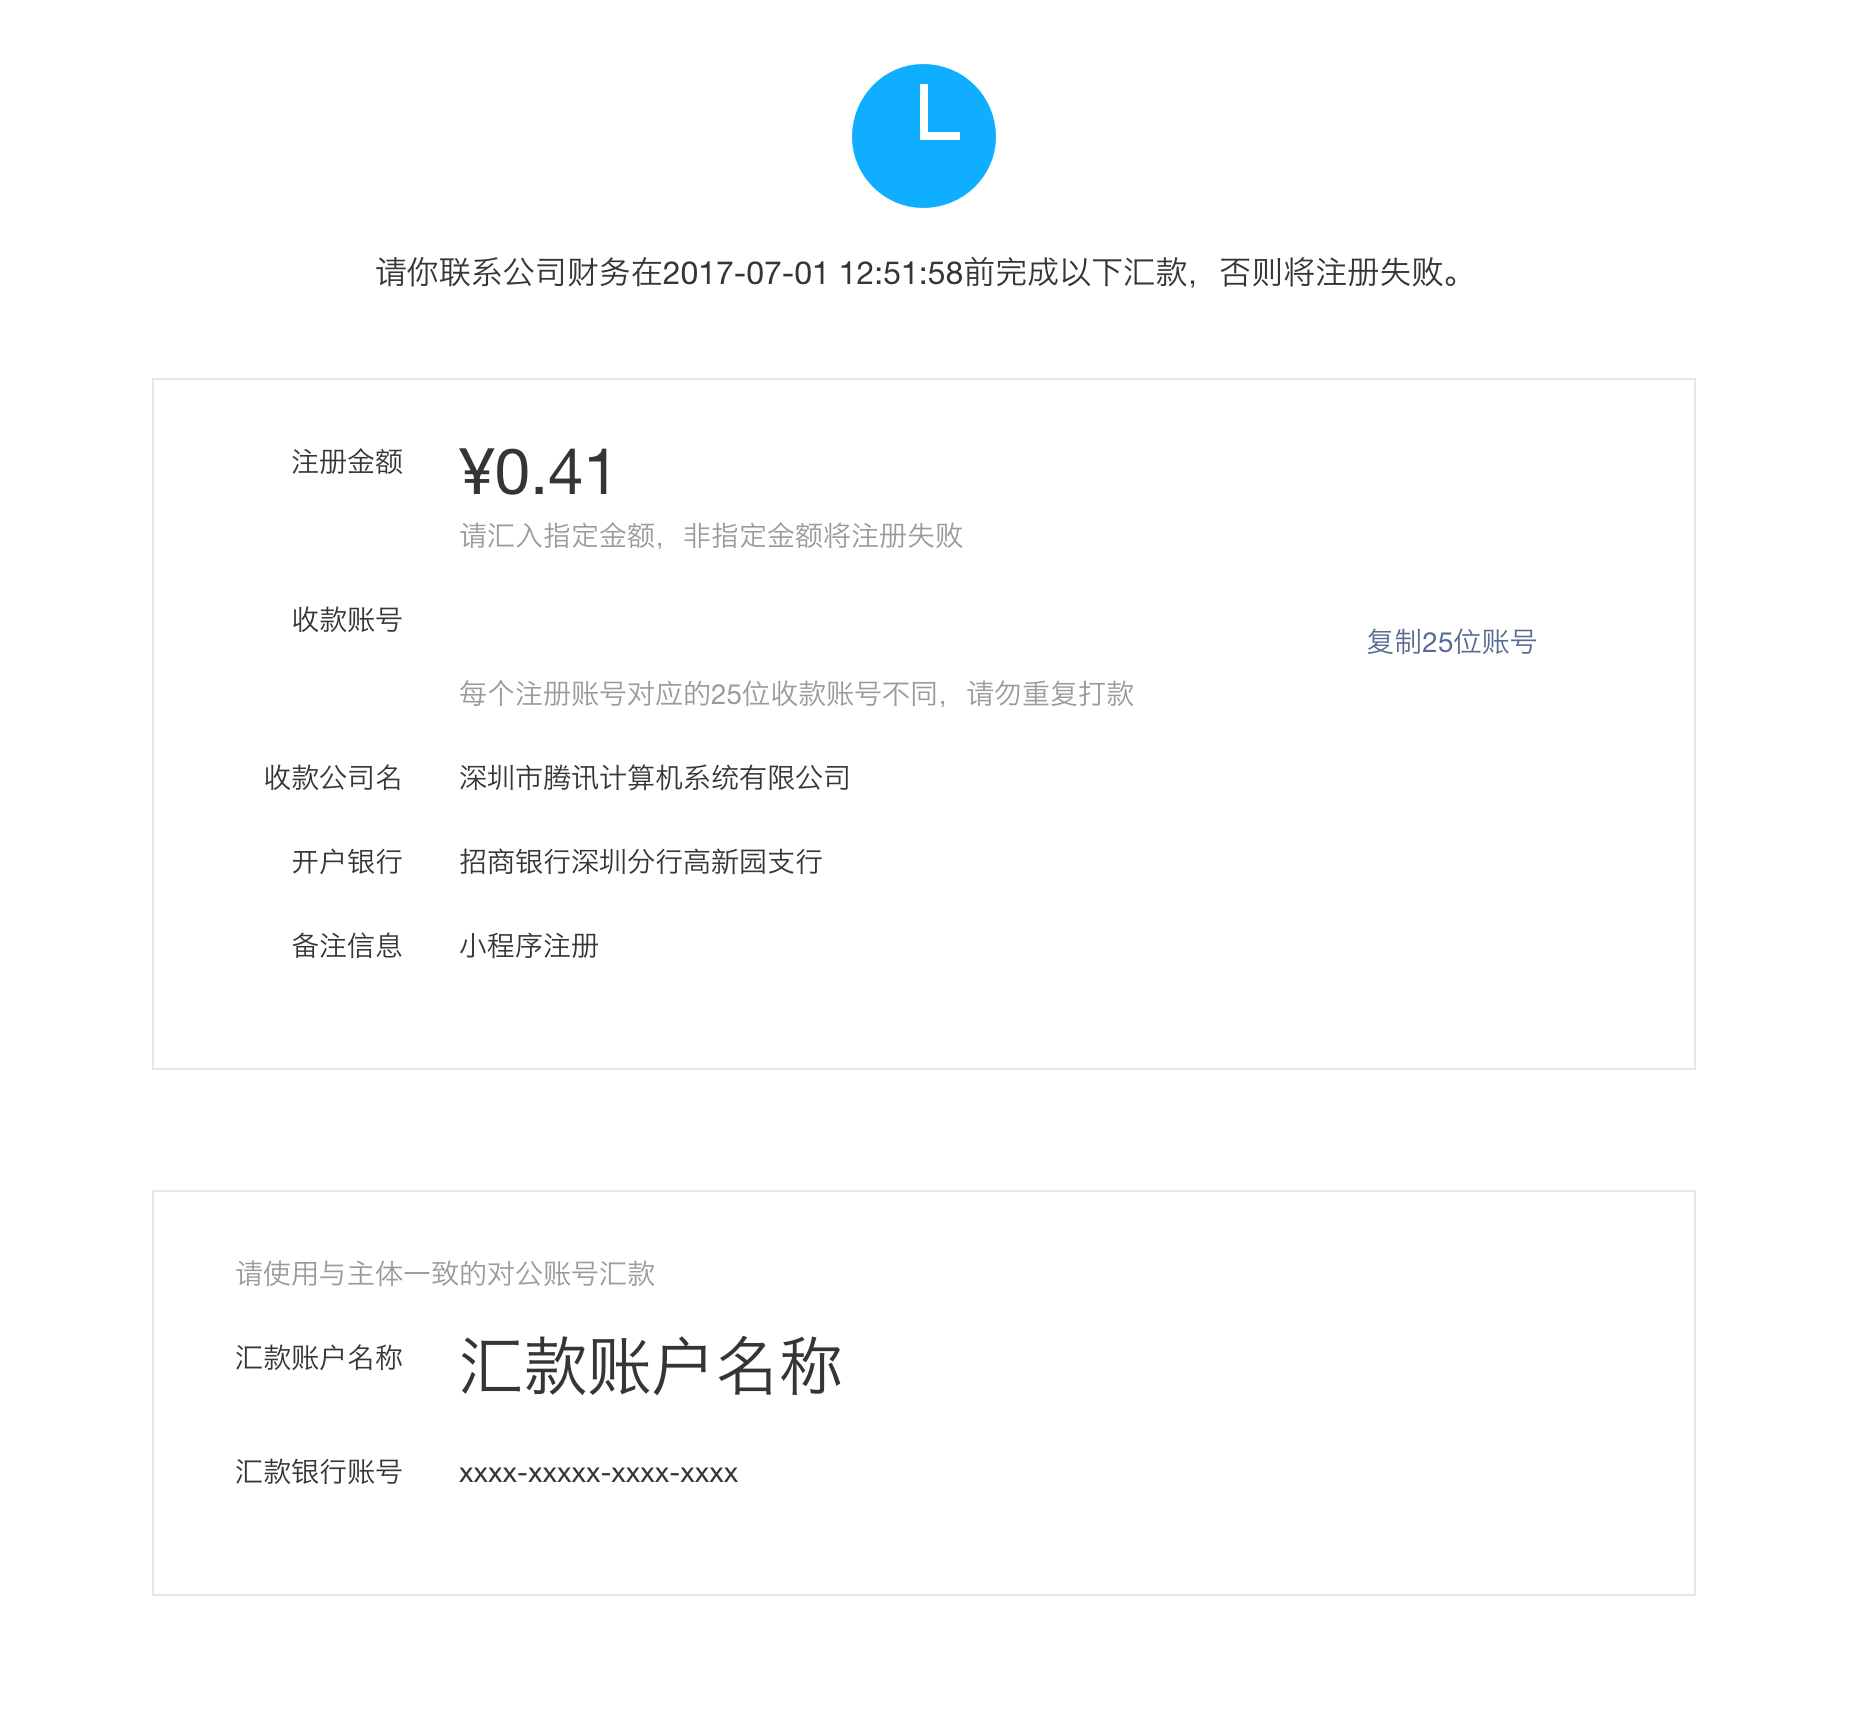 Product Positioning and Function Introduction | WeChat public doc